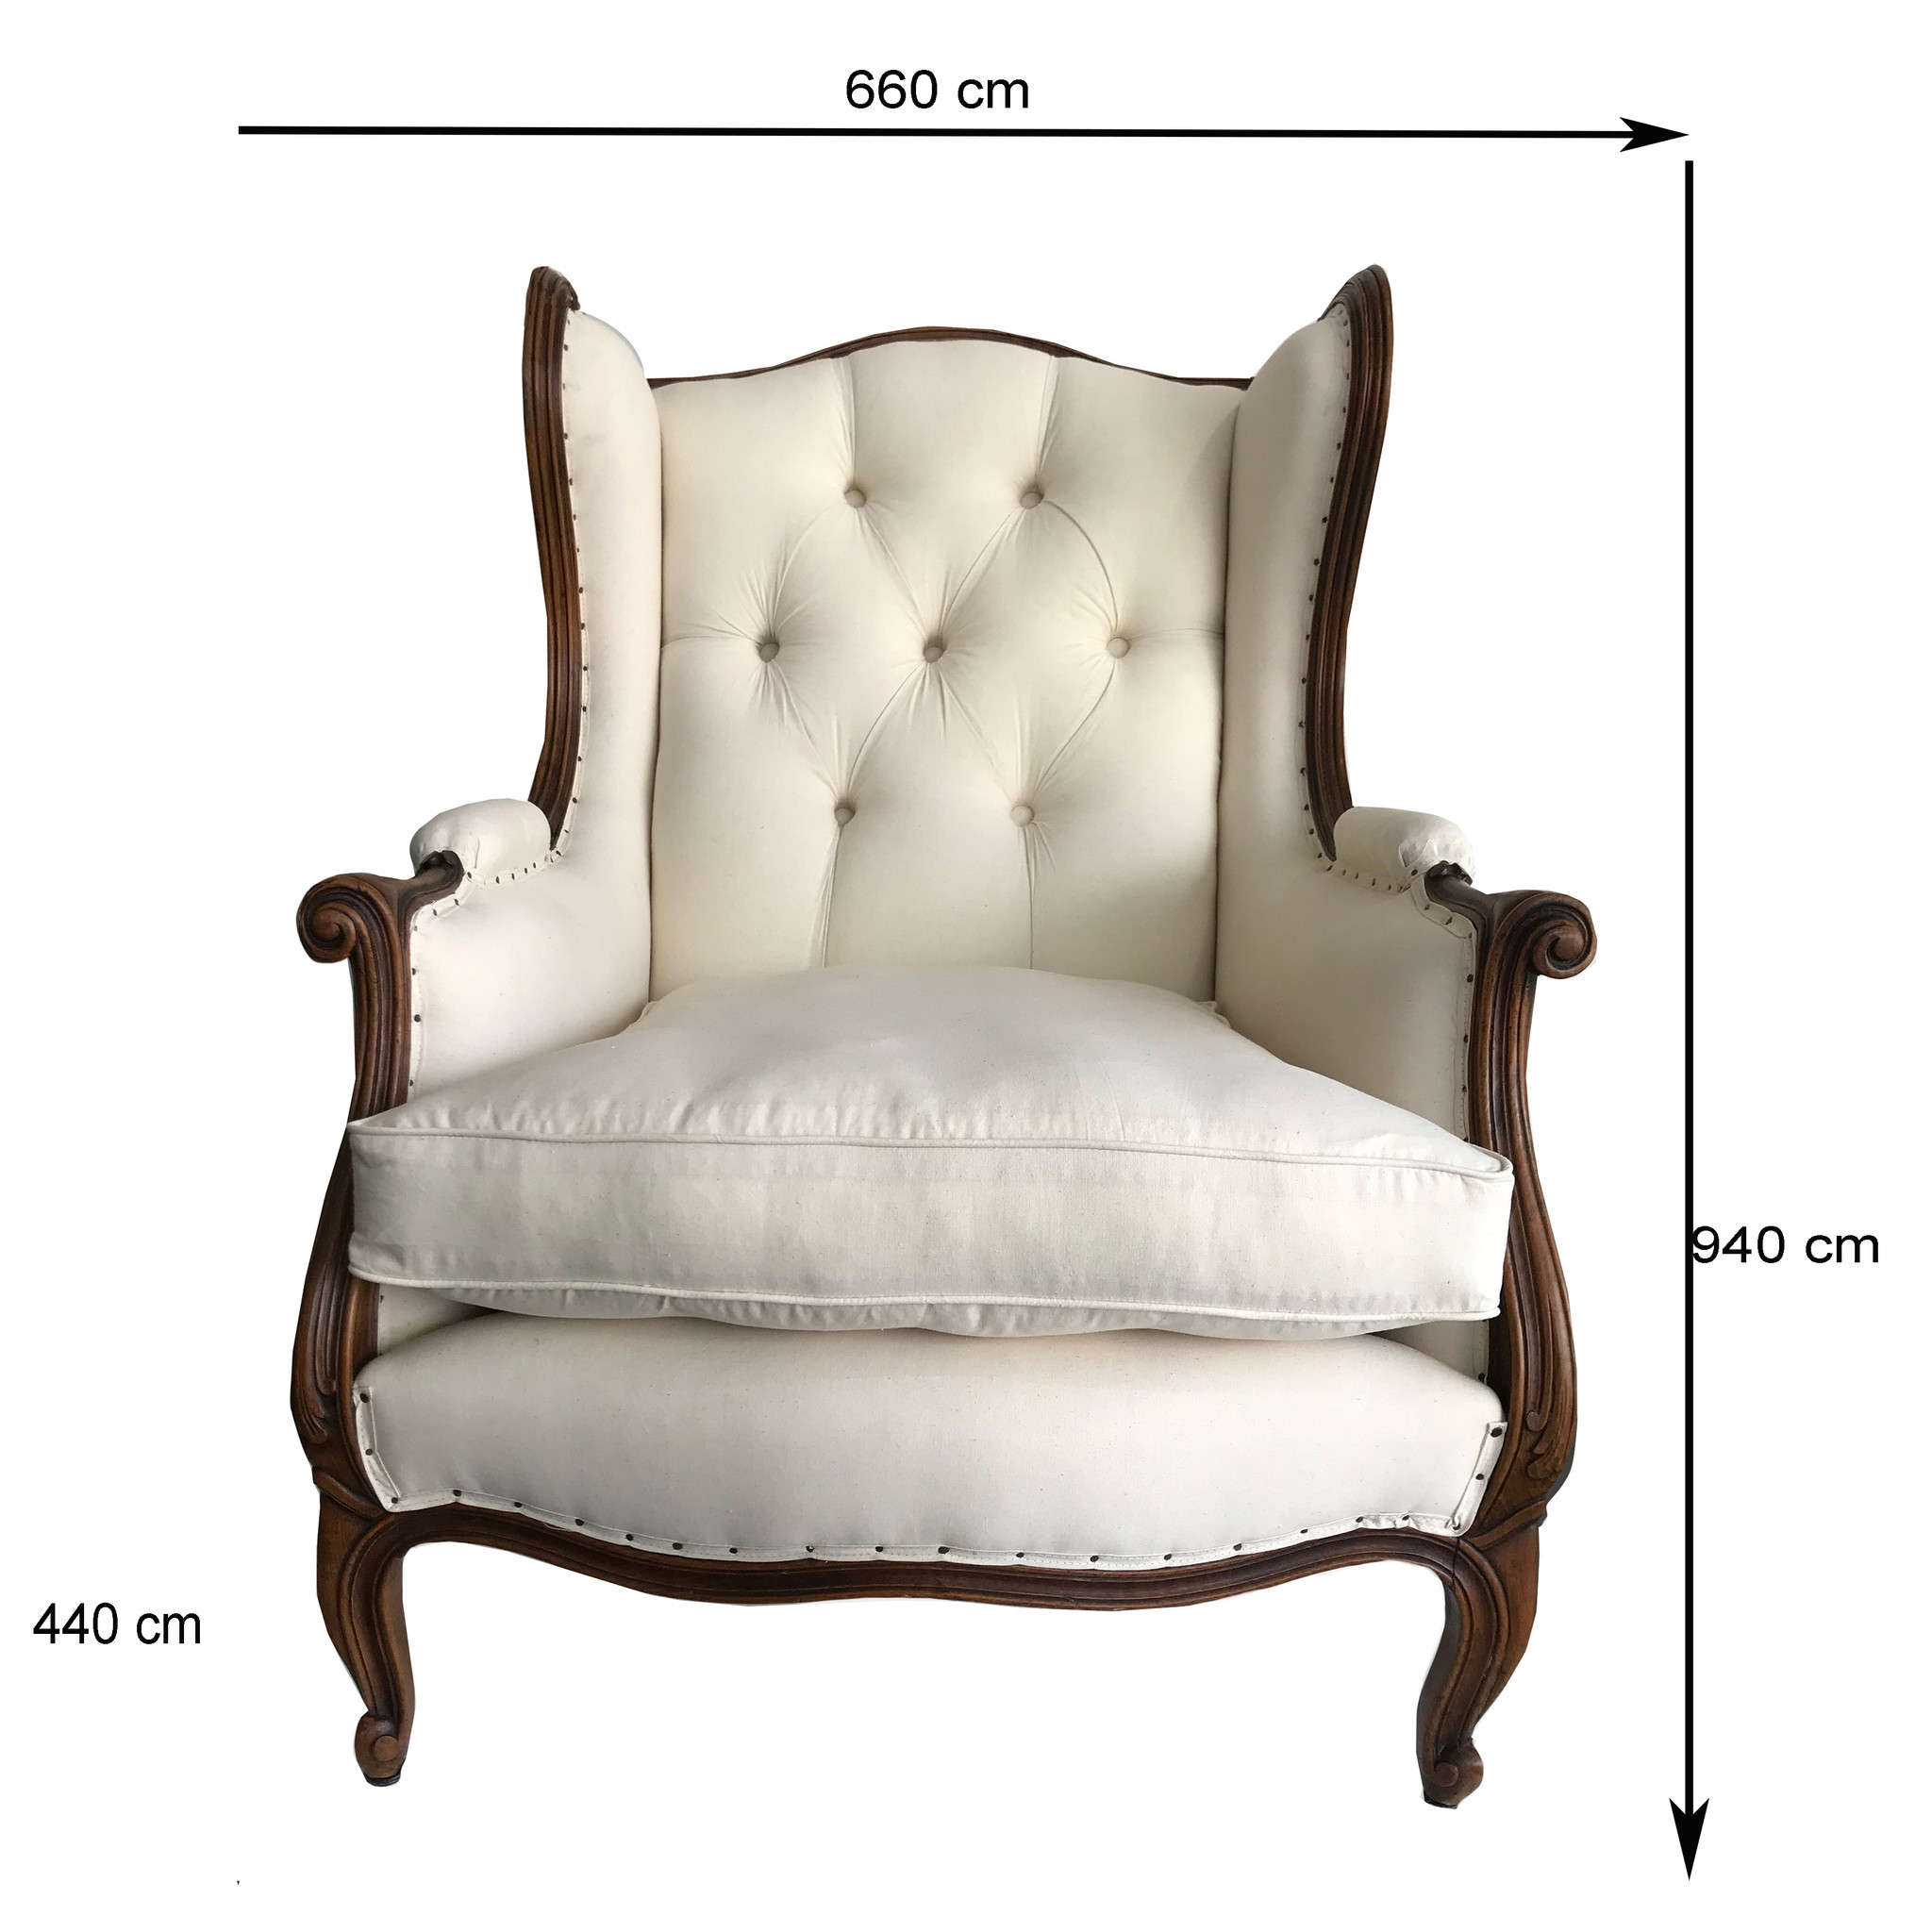 19TH CENTURY LOUIS XVI BUTTON BACK CHAIR - YOUR CHOICE OF DESIGN FOR UPHOLSTERY FABRIC (SOLD SEPARATELY OR AS A PAIR)